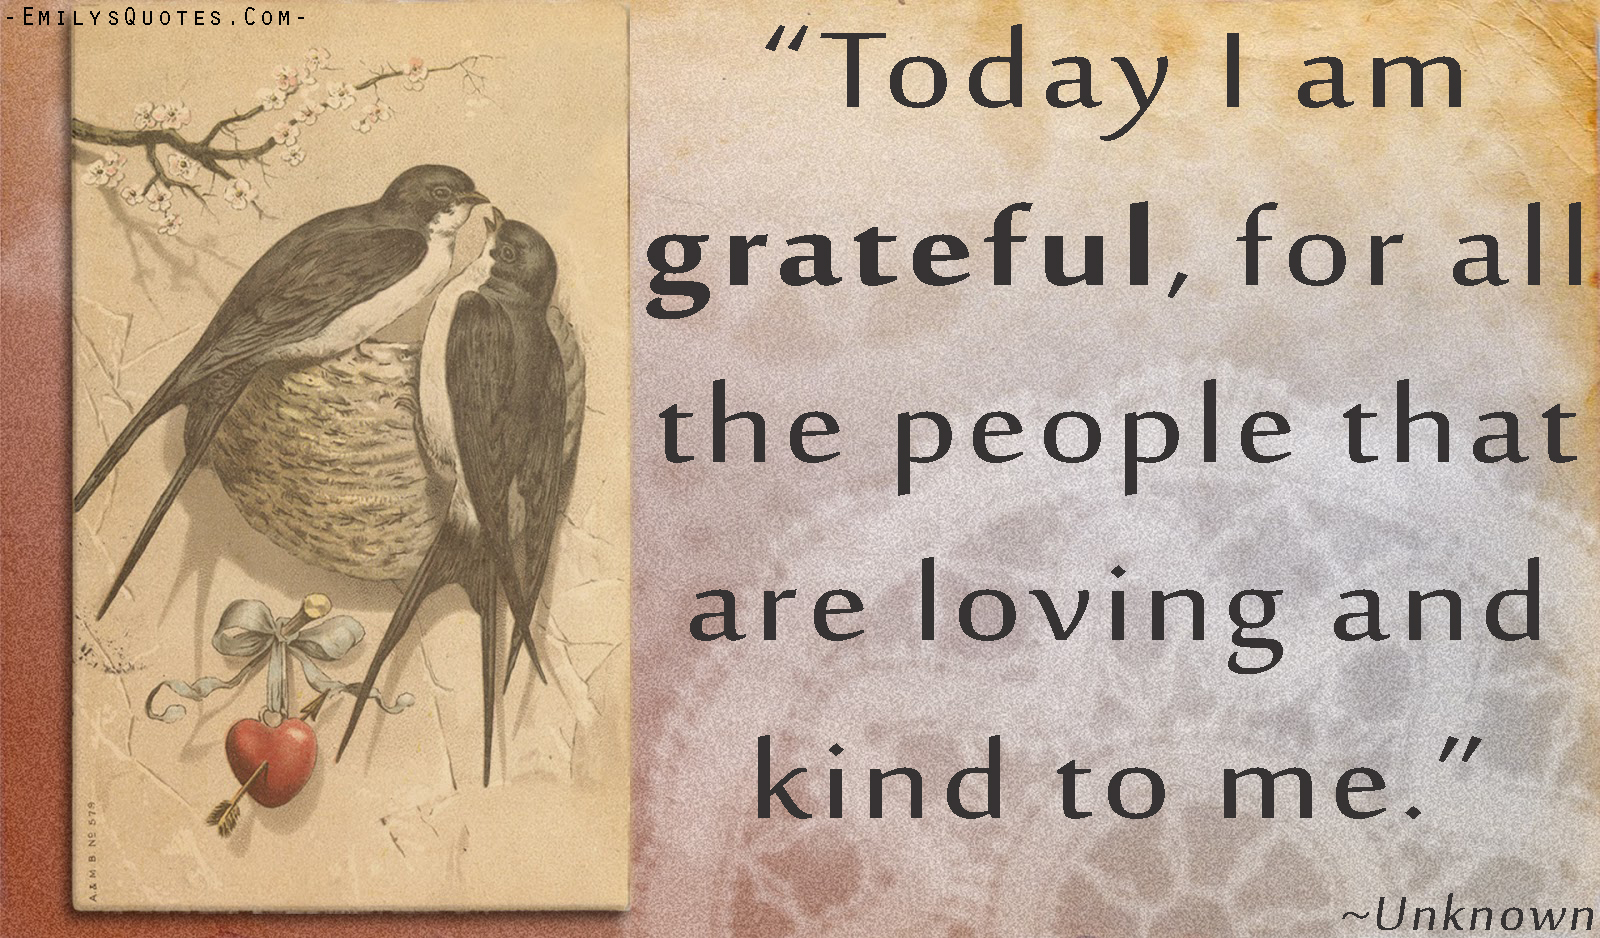 Loving Kindness Quotes Simple Today I Am Grateful For All The People That Are Loving And Kind